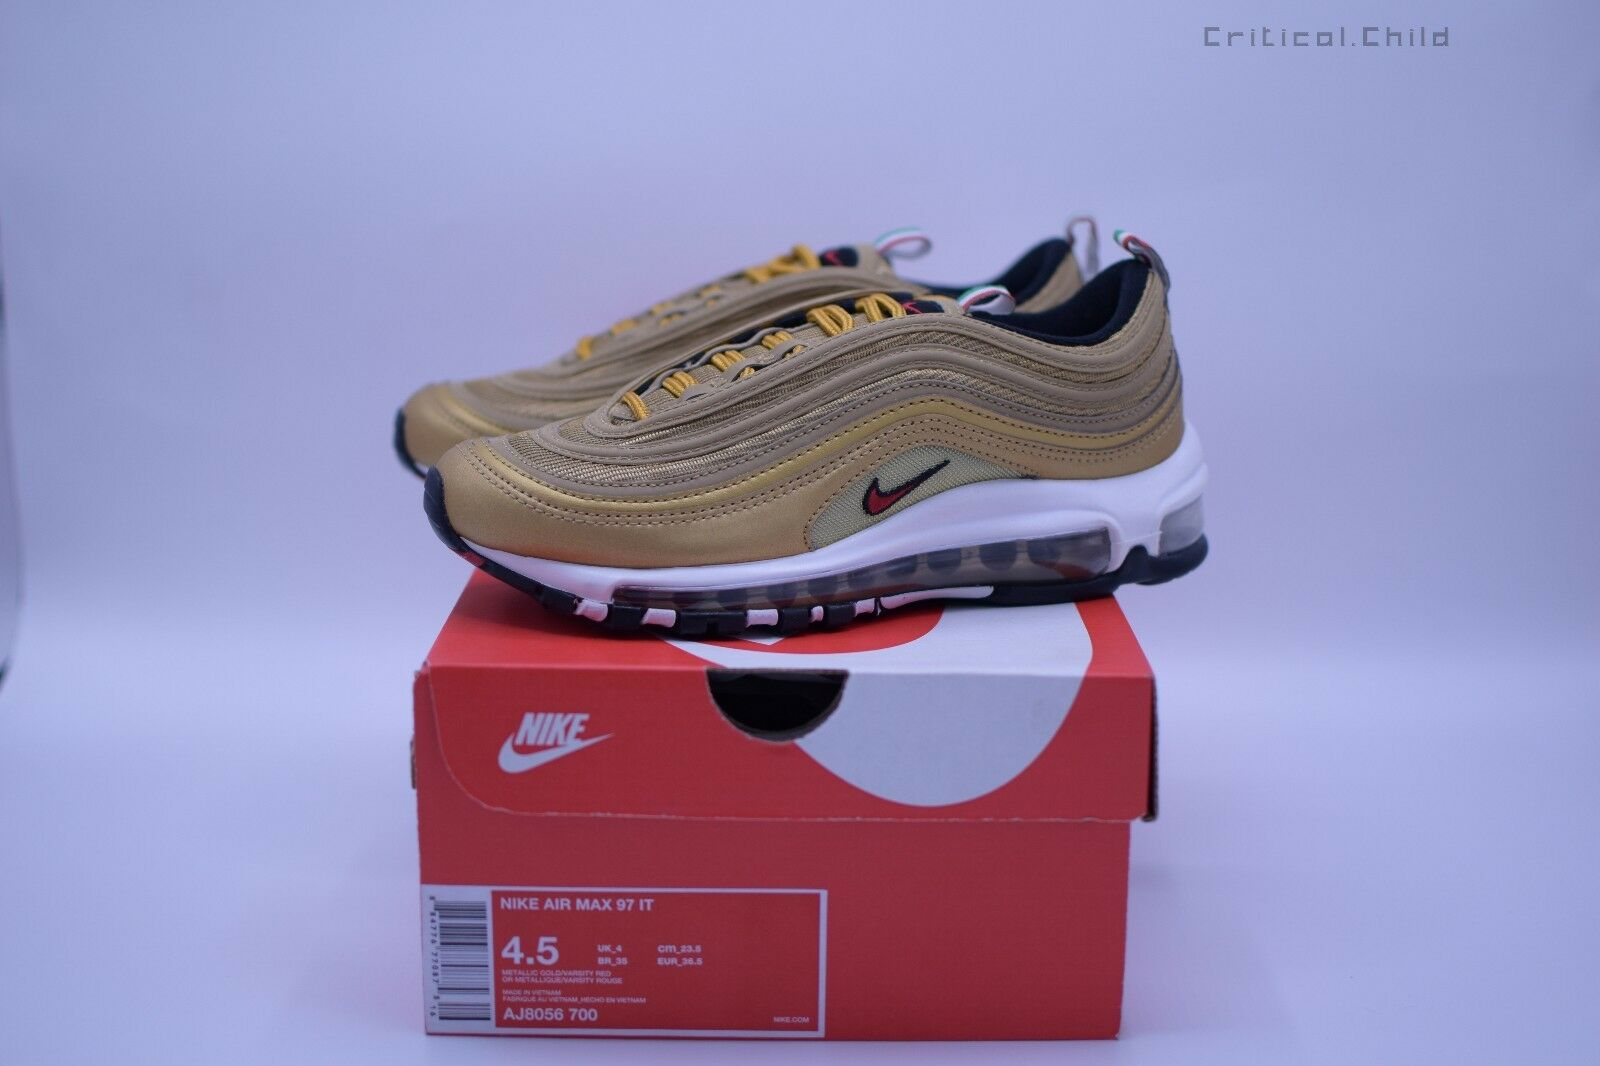 31f31ed8e4 Nike Air Max 97 OG Metallic gold Italian Flag gold AJ8056-700 sz 4.5us